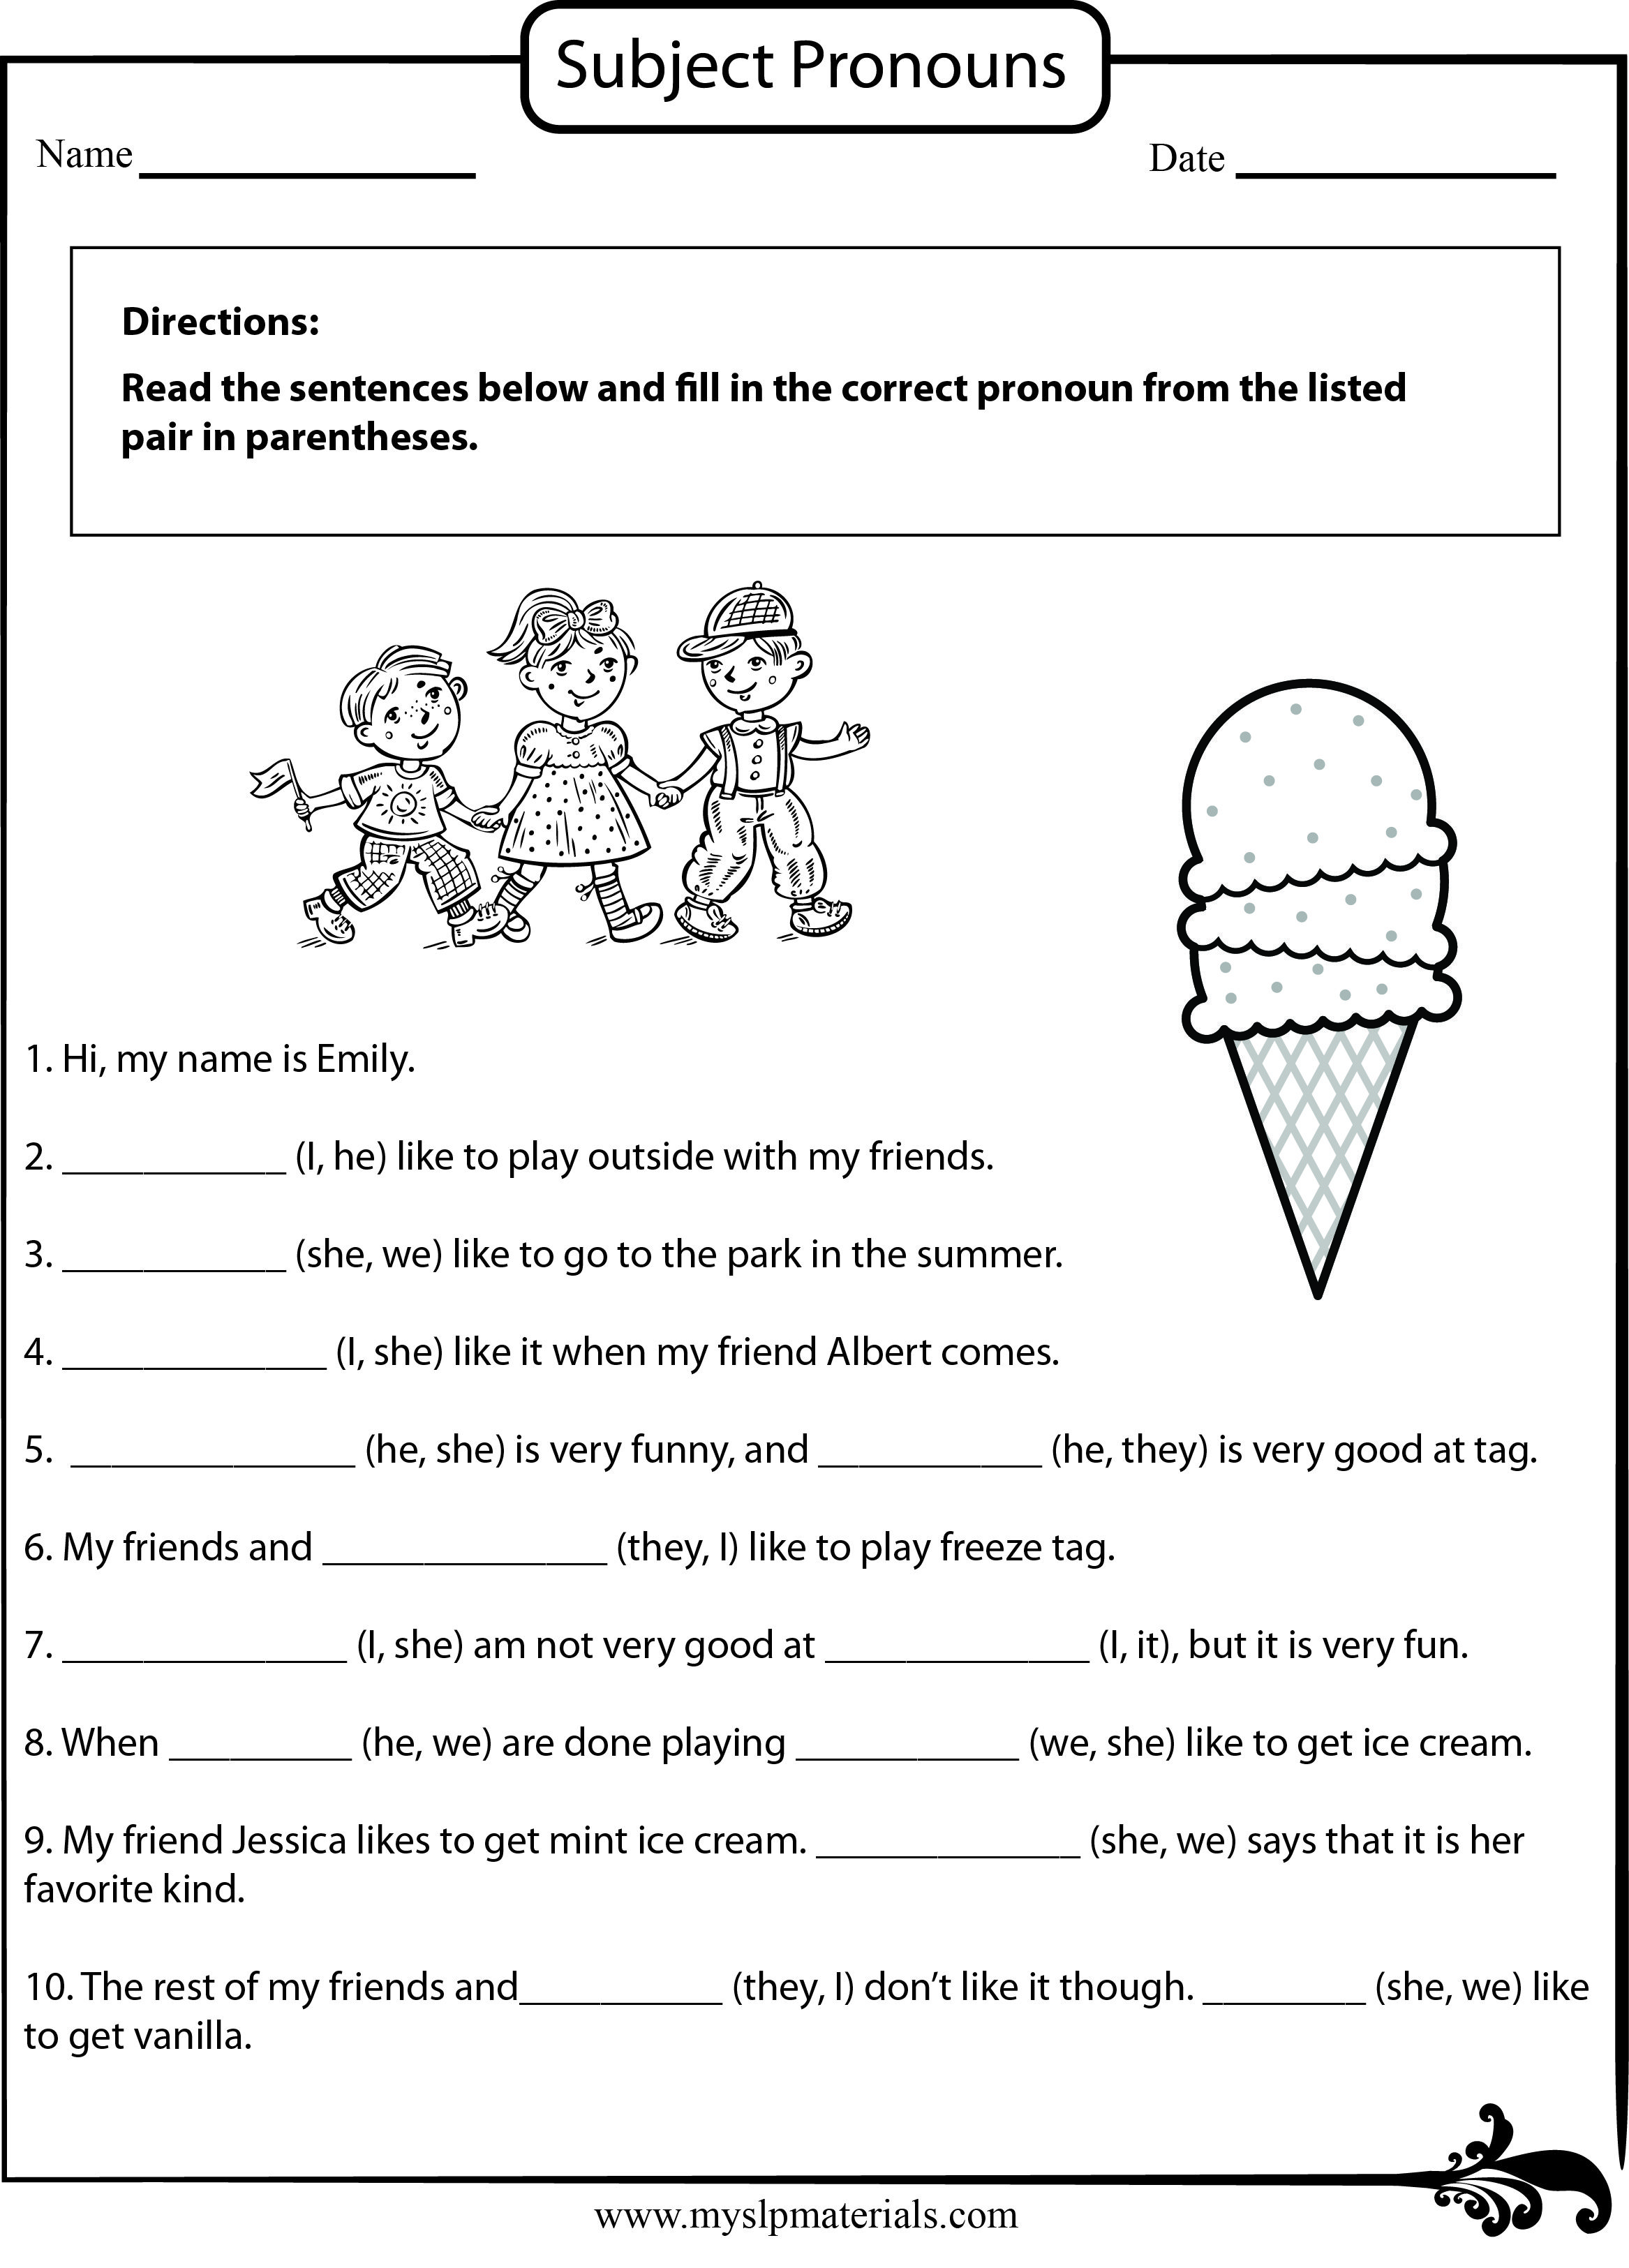 httpsmyslpmaterials Subject Pronoun SpeechLanguage – Subject Pronoun Worksheets